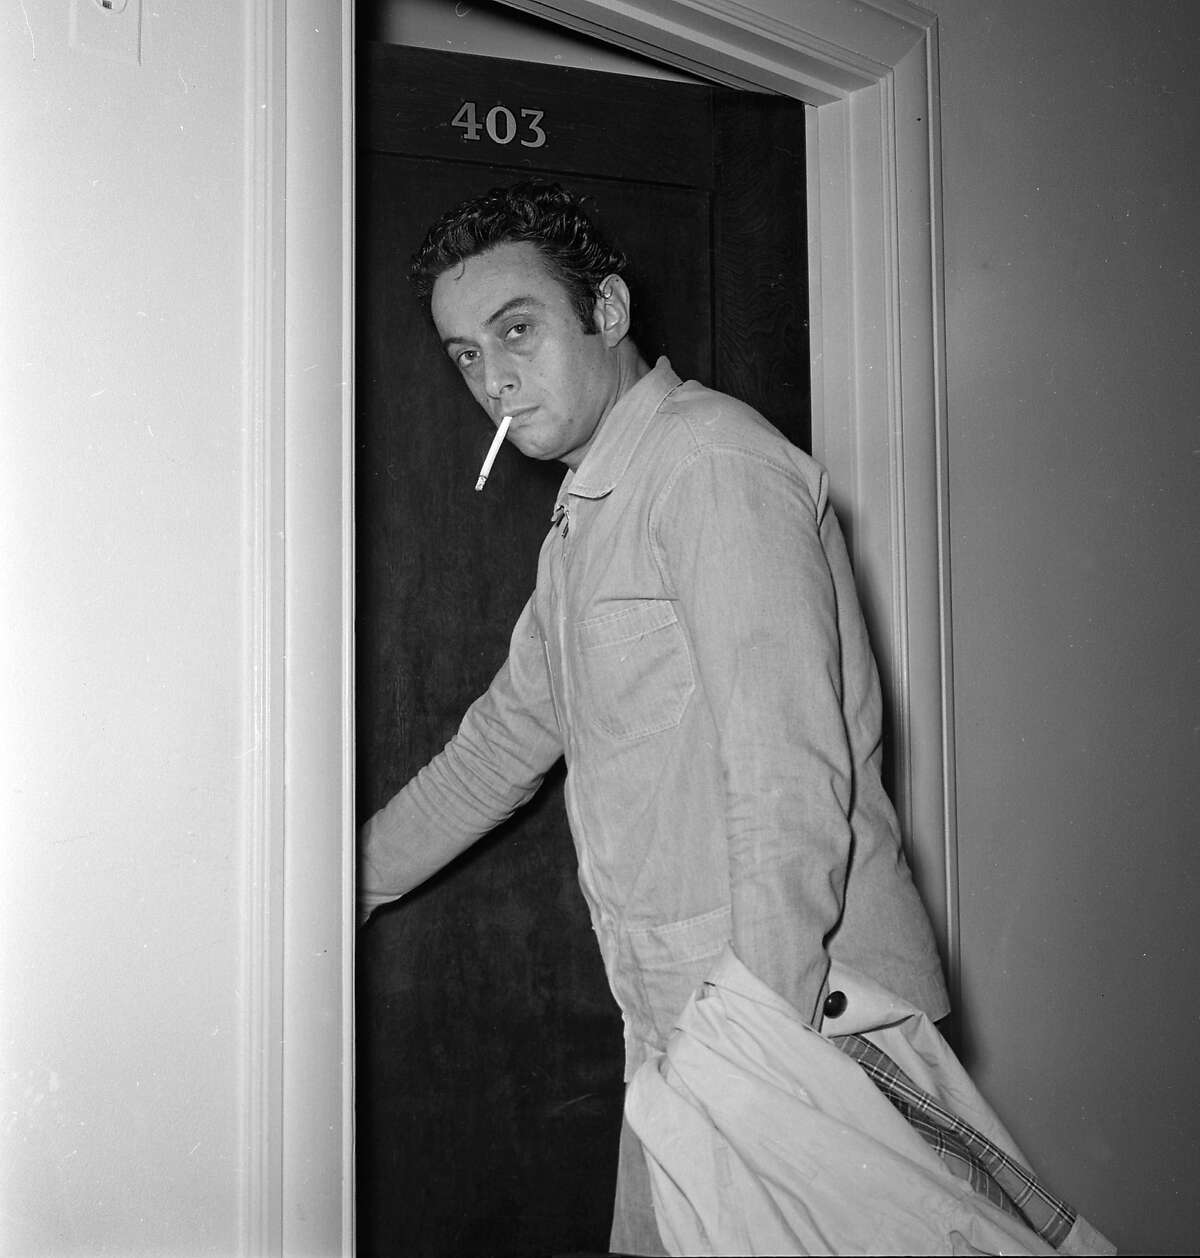 Lenny Bruce was 40 when the standup comedian died in 1966 after reportedly overdosing on heroin.